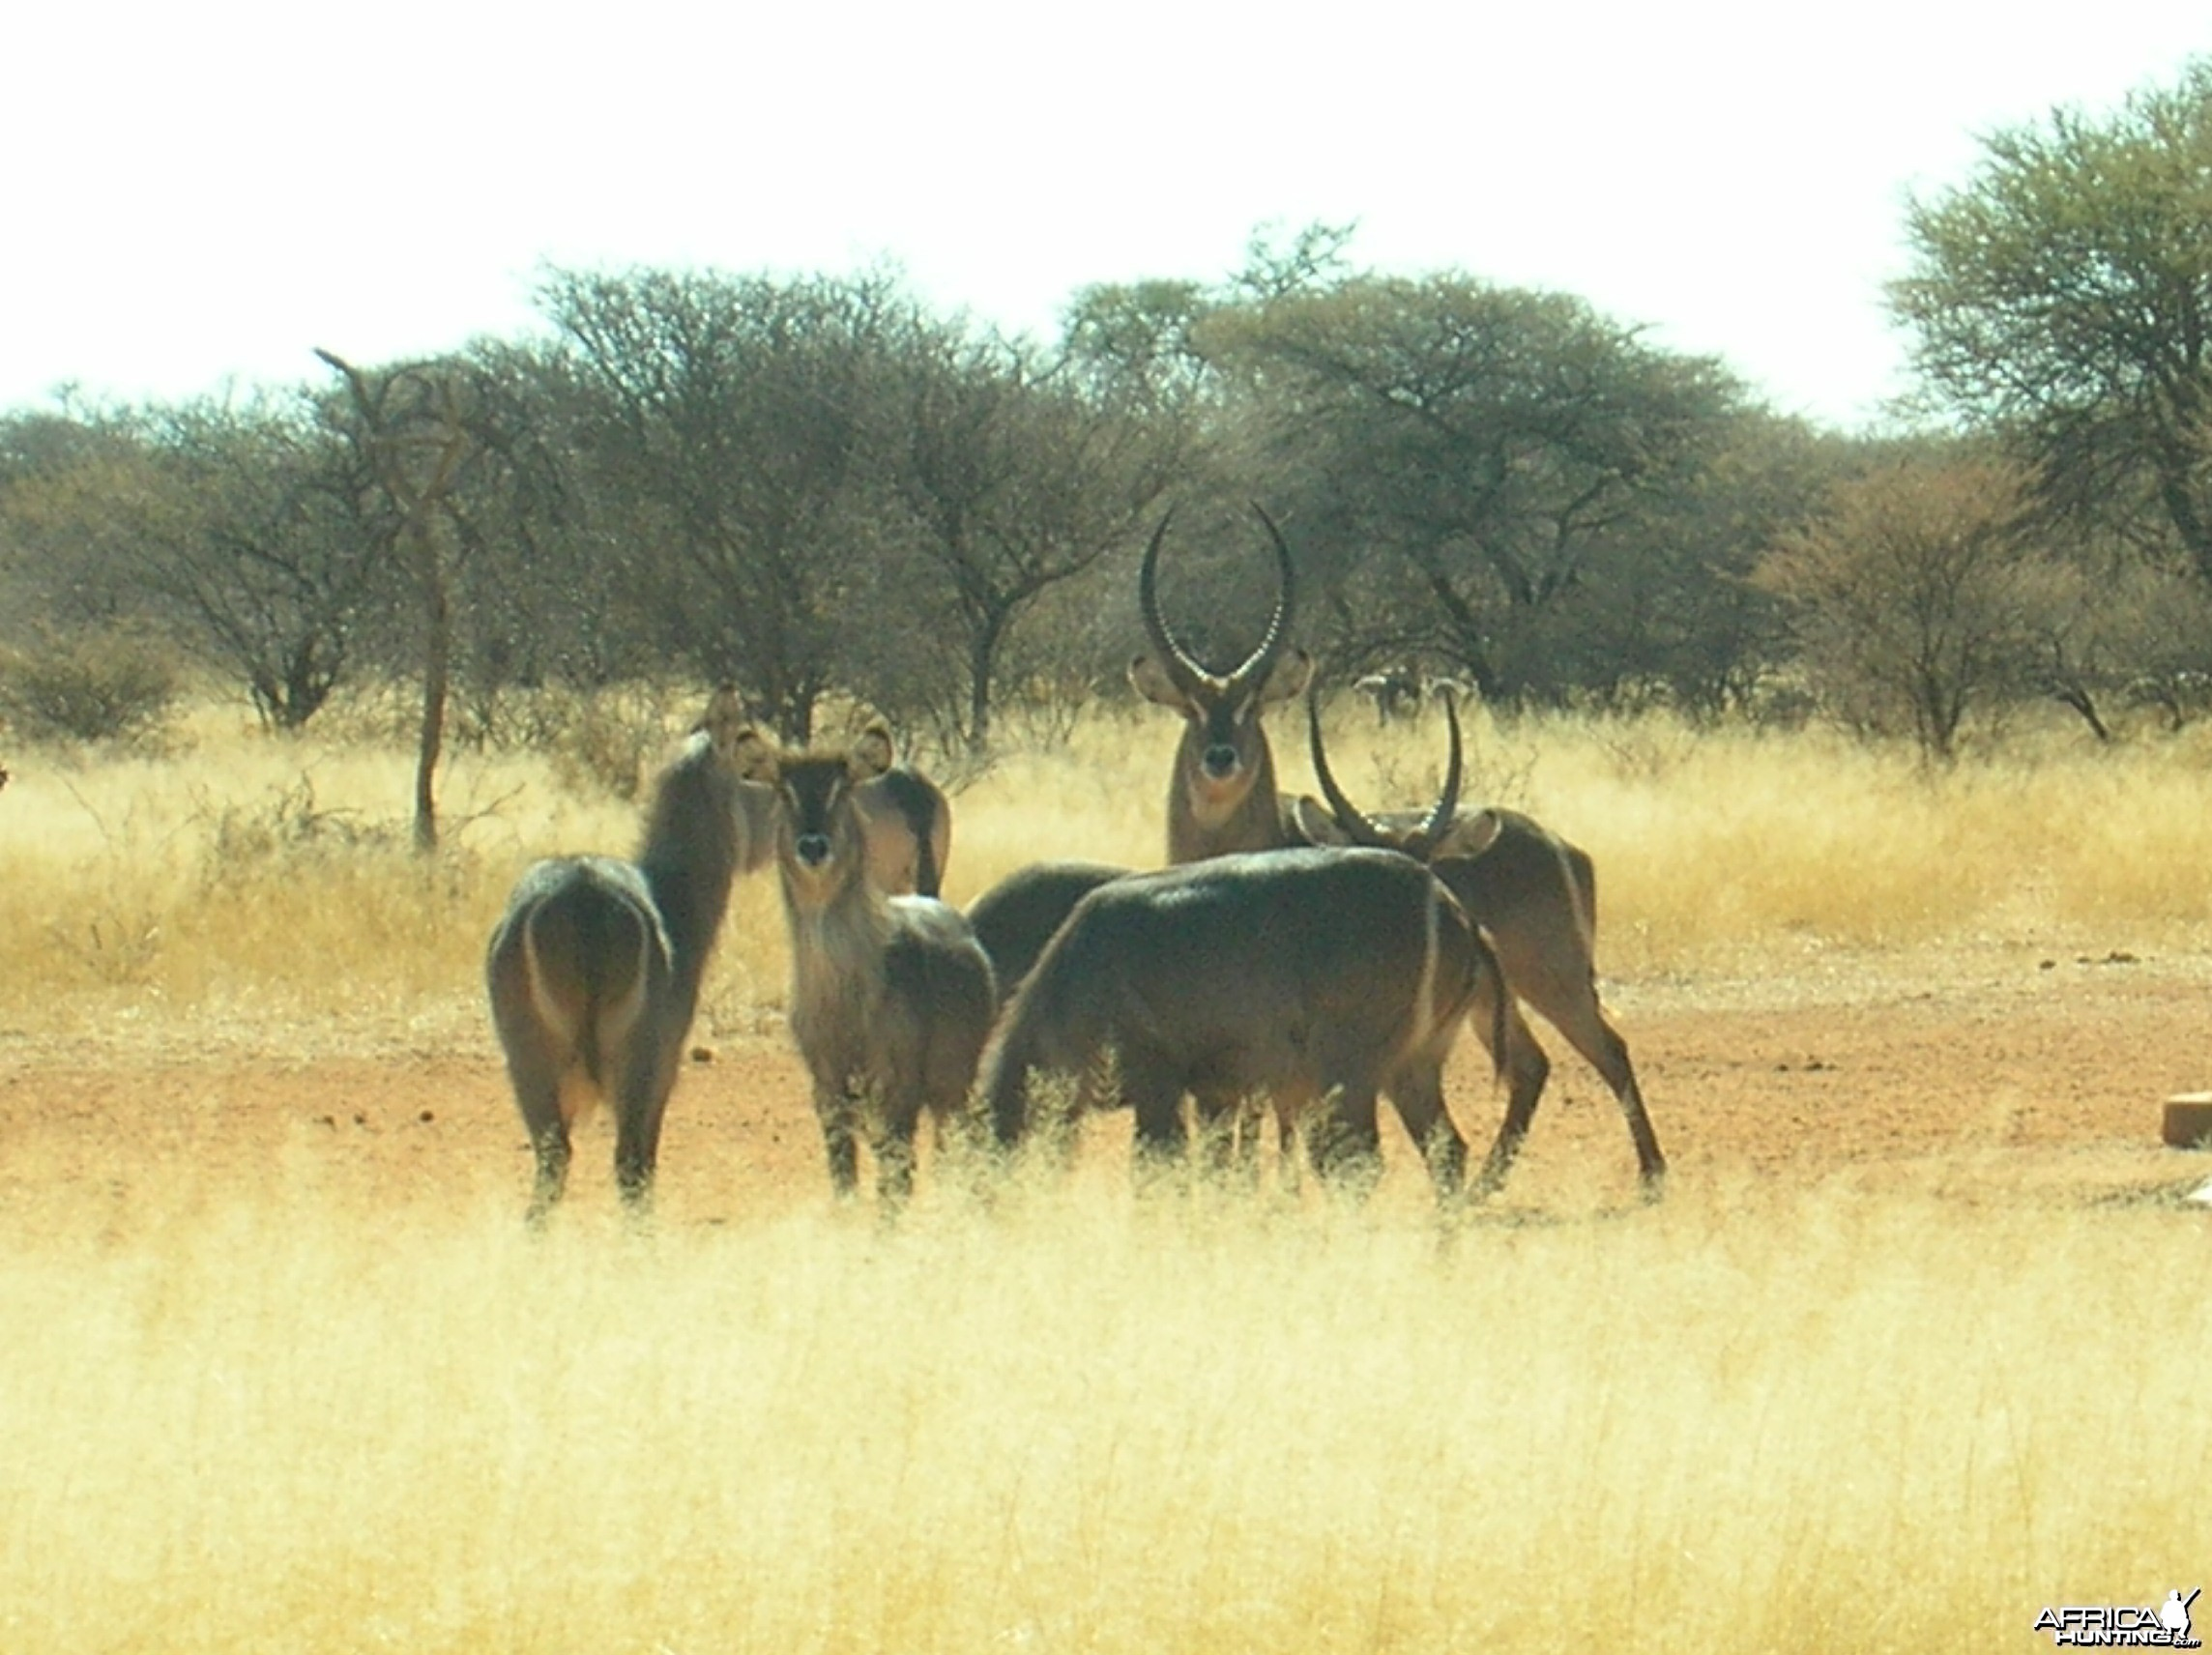 Waterbucks in Namibia